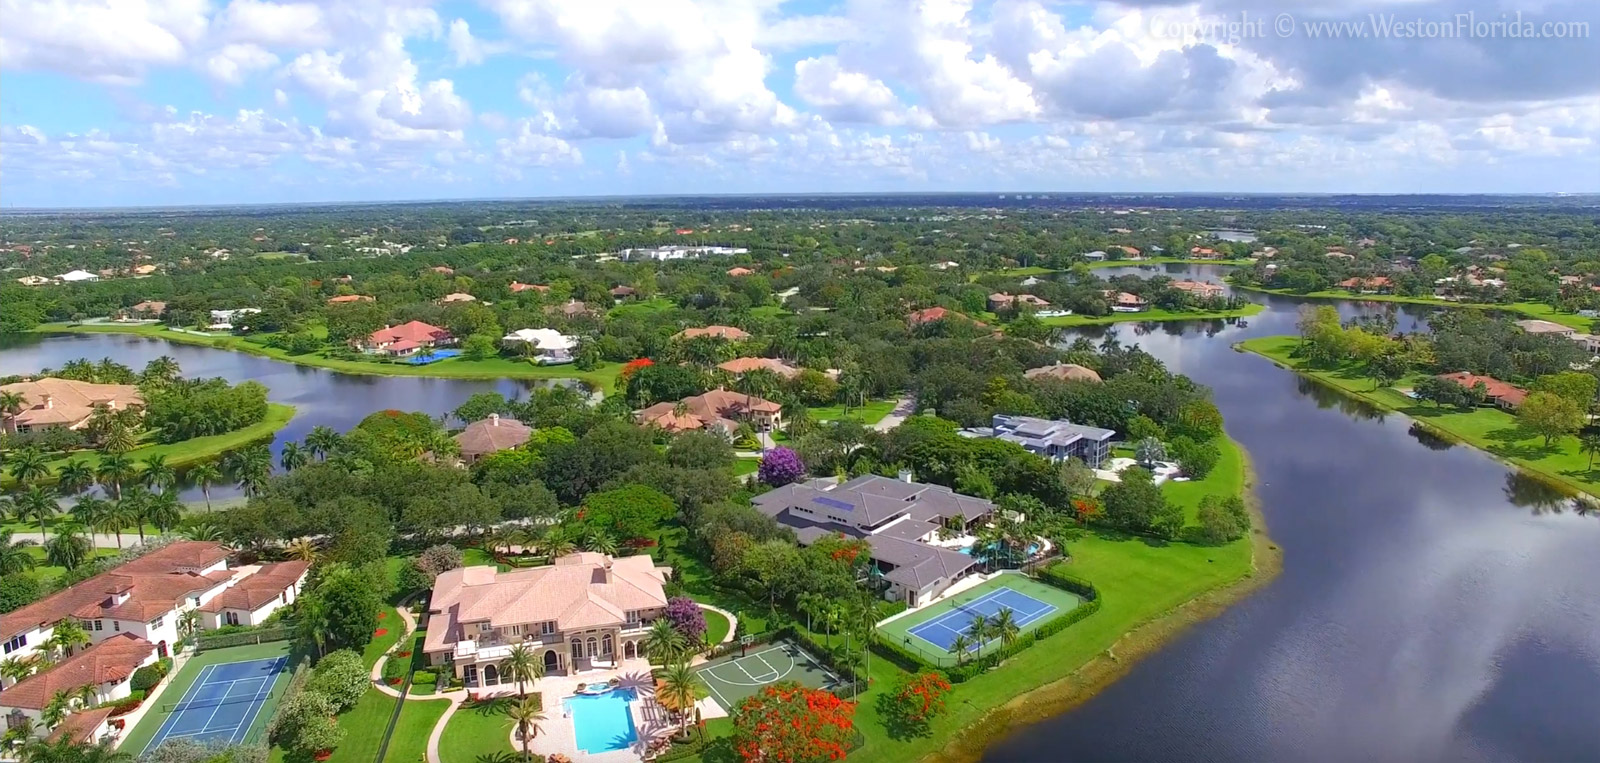 Weston Florida residential area